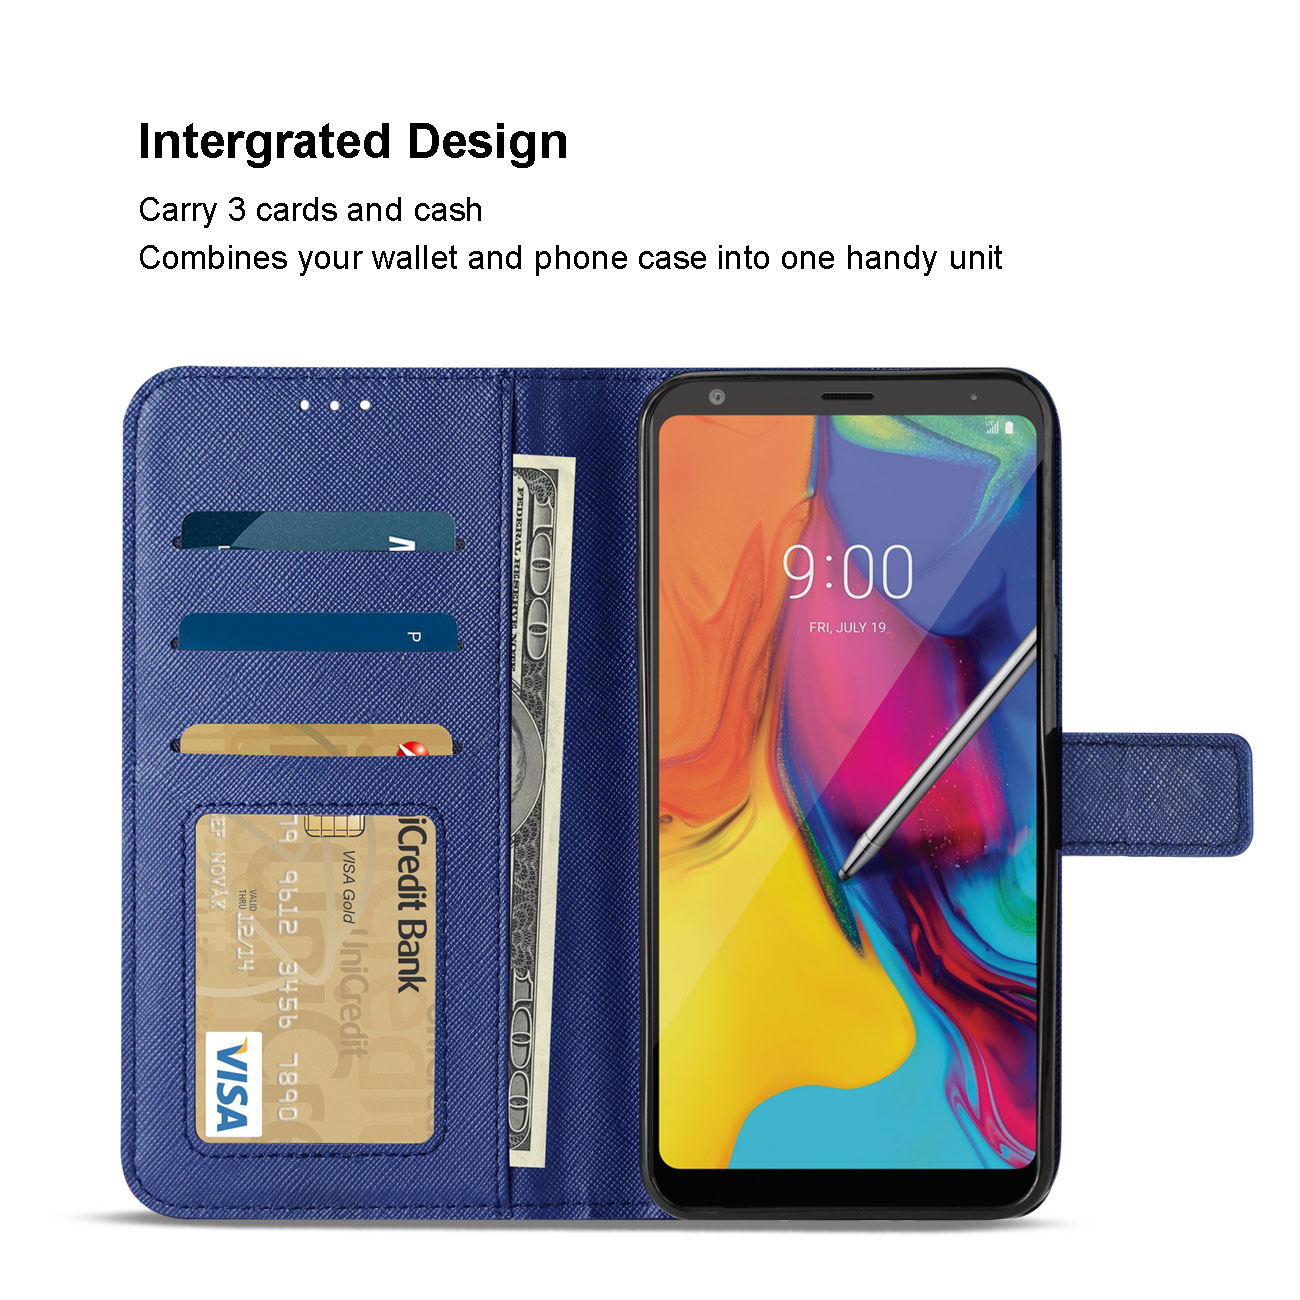 LG STYLO 5 3-In-1 Wallet Case In BLUE